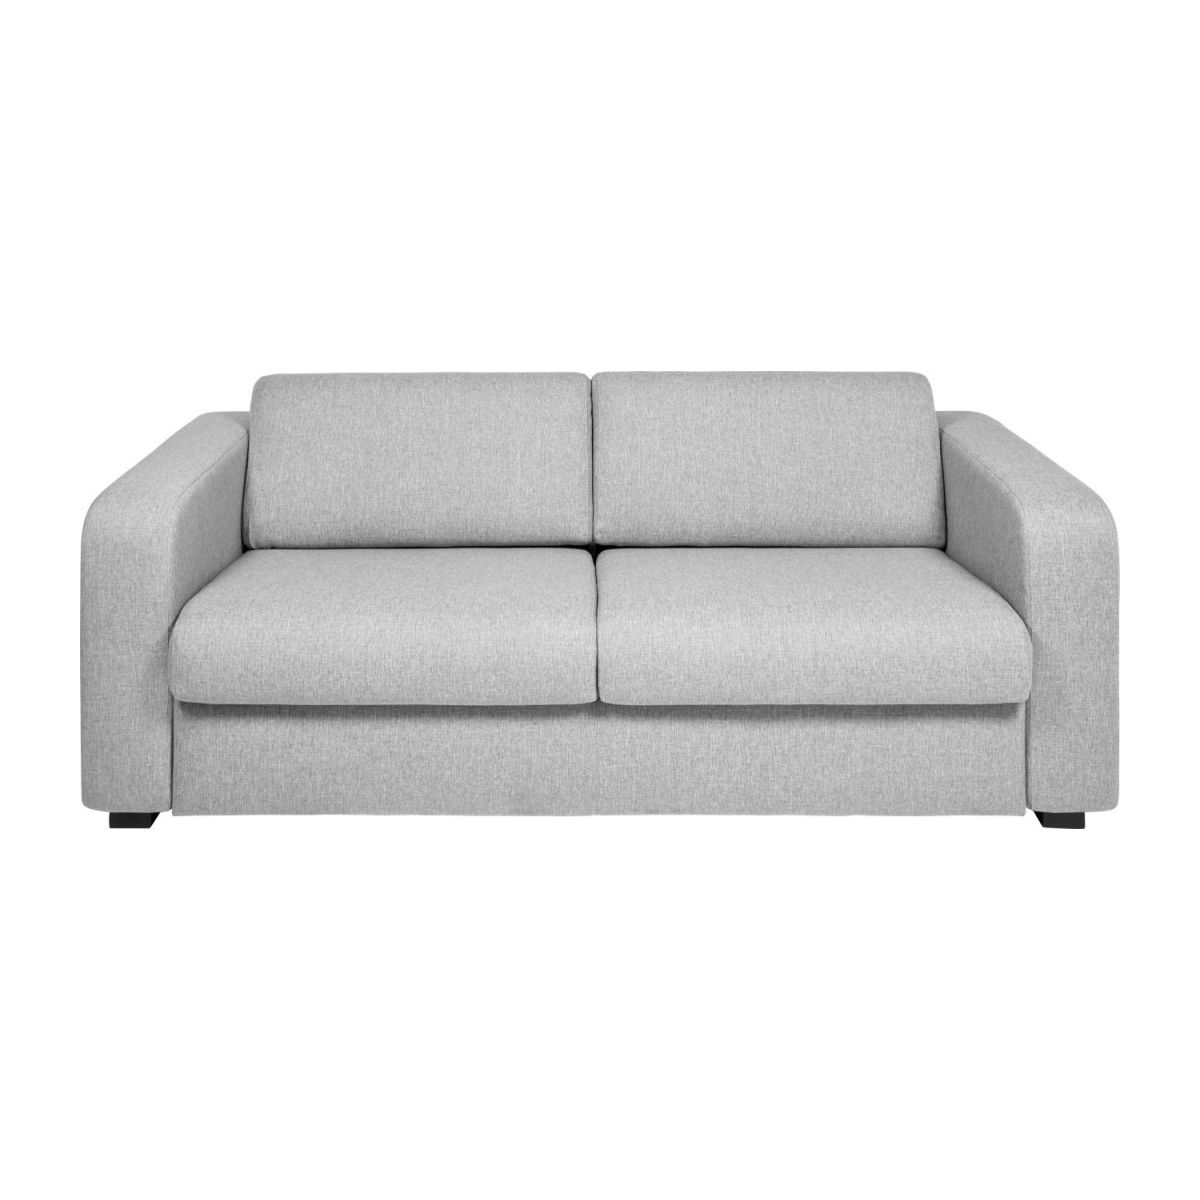 Fabric 3-seater sofa n°3